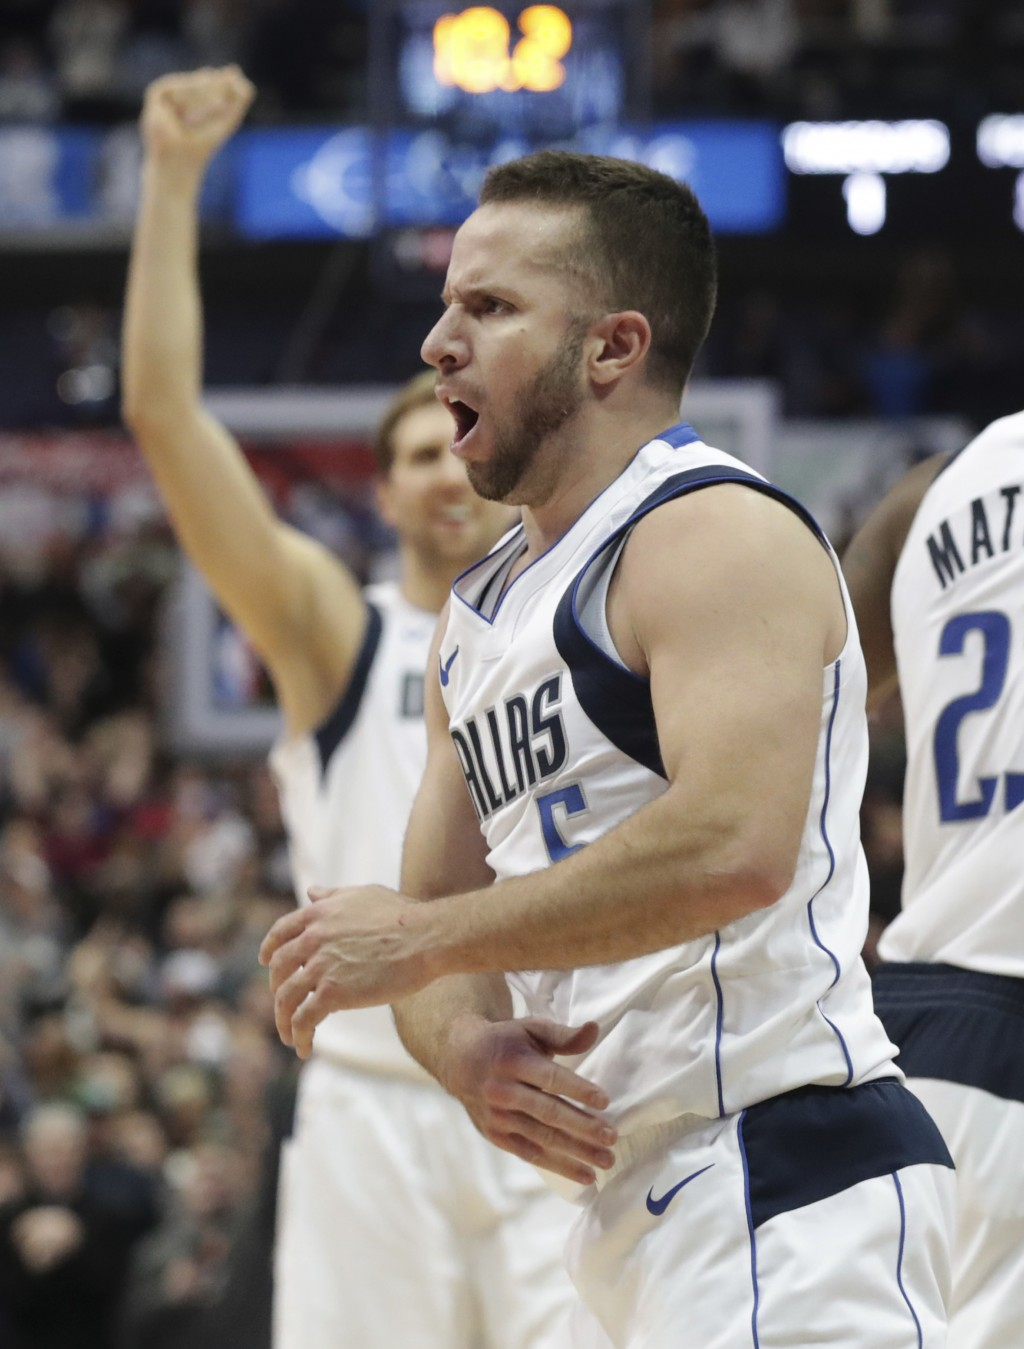 Dallas Mavericks guard J.J. Barea (5) reacts to scoring during the second half of an NBA basketball game against the Toronto Raptors in Dallas, Tuesda...